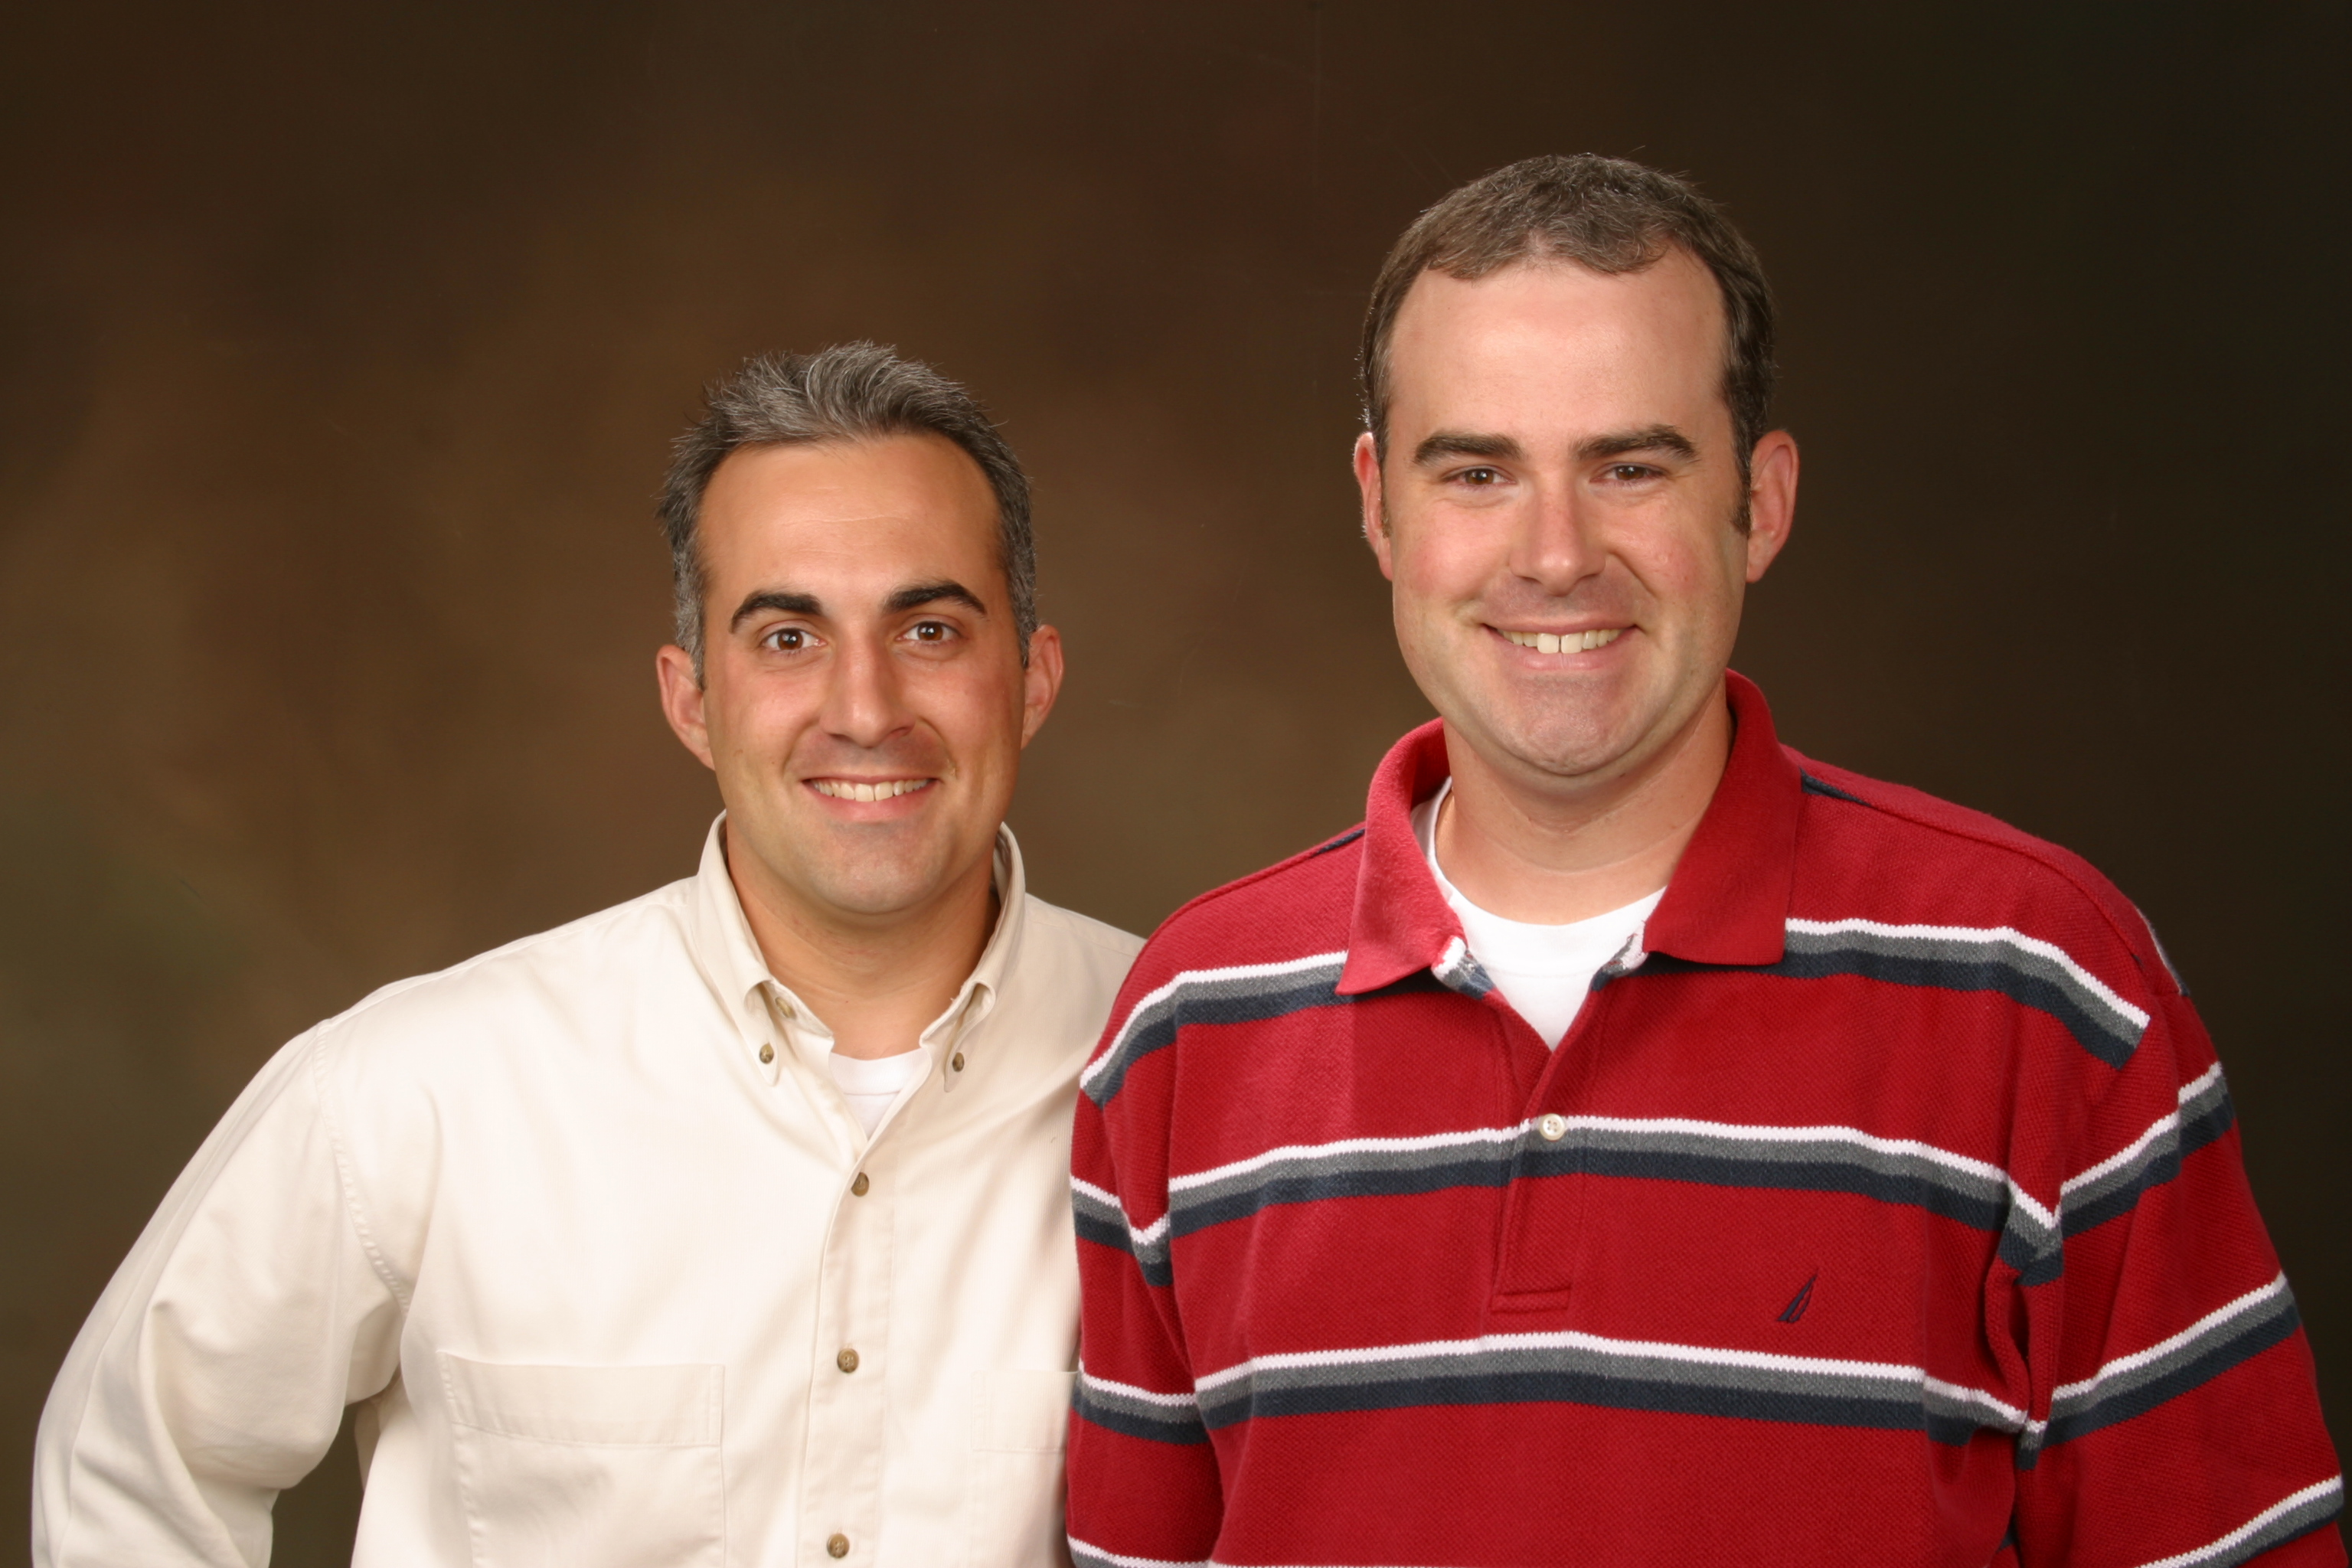 Stephen and Alex Kendrick